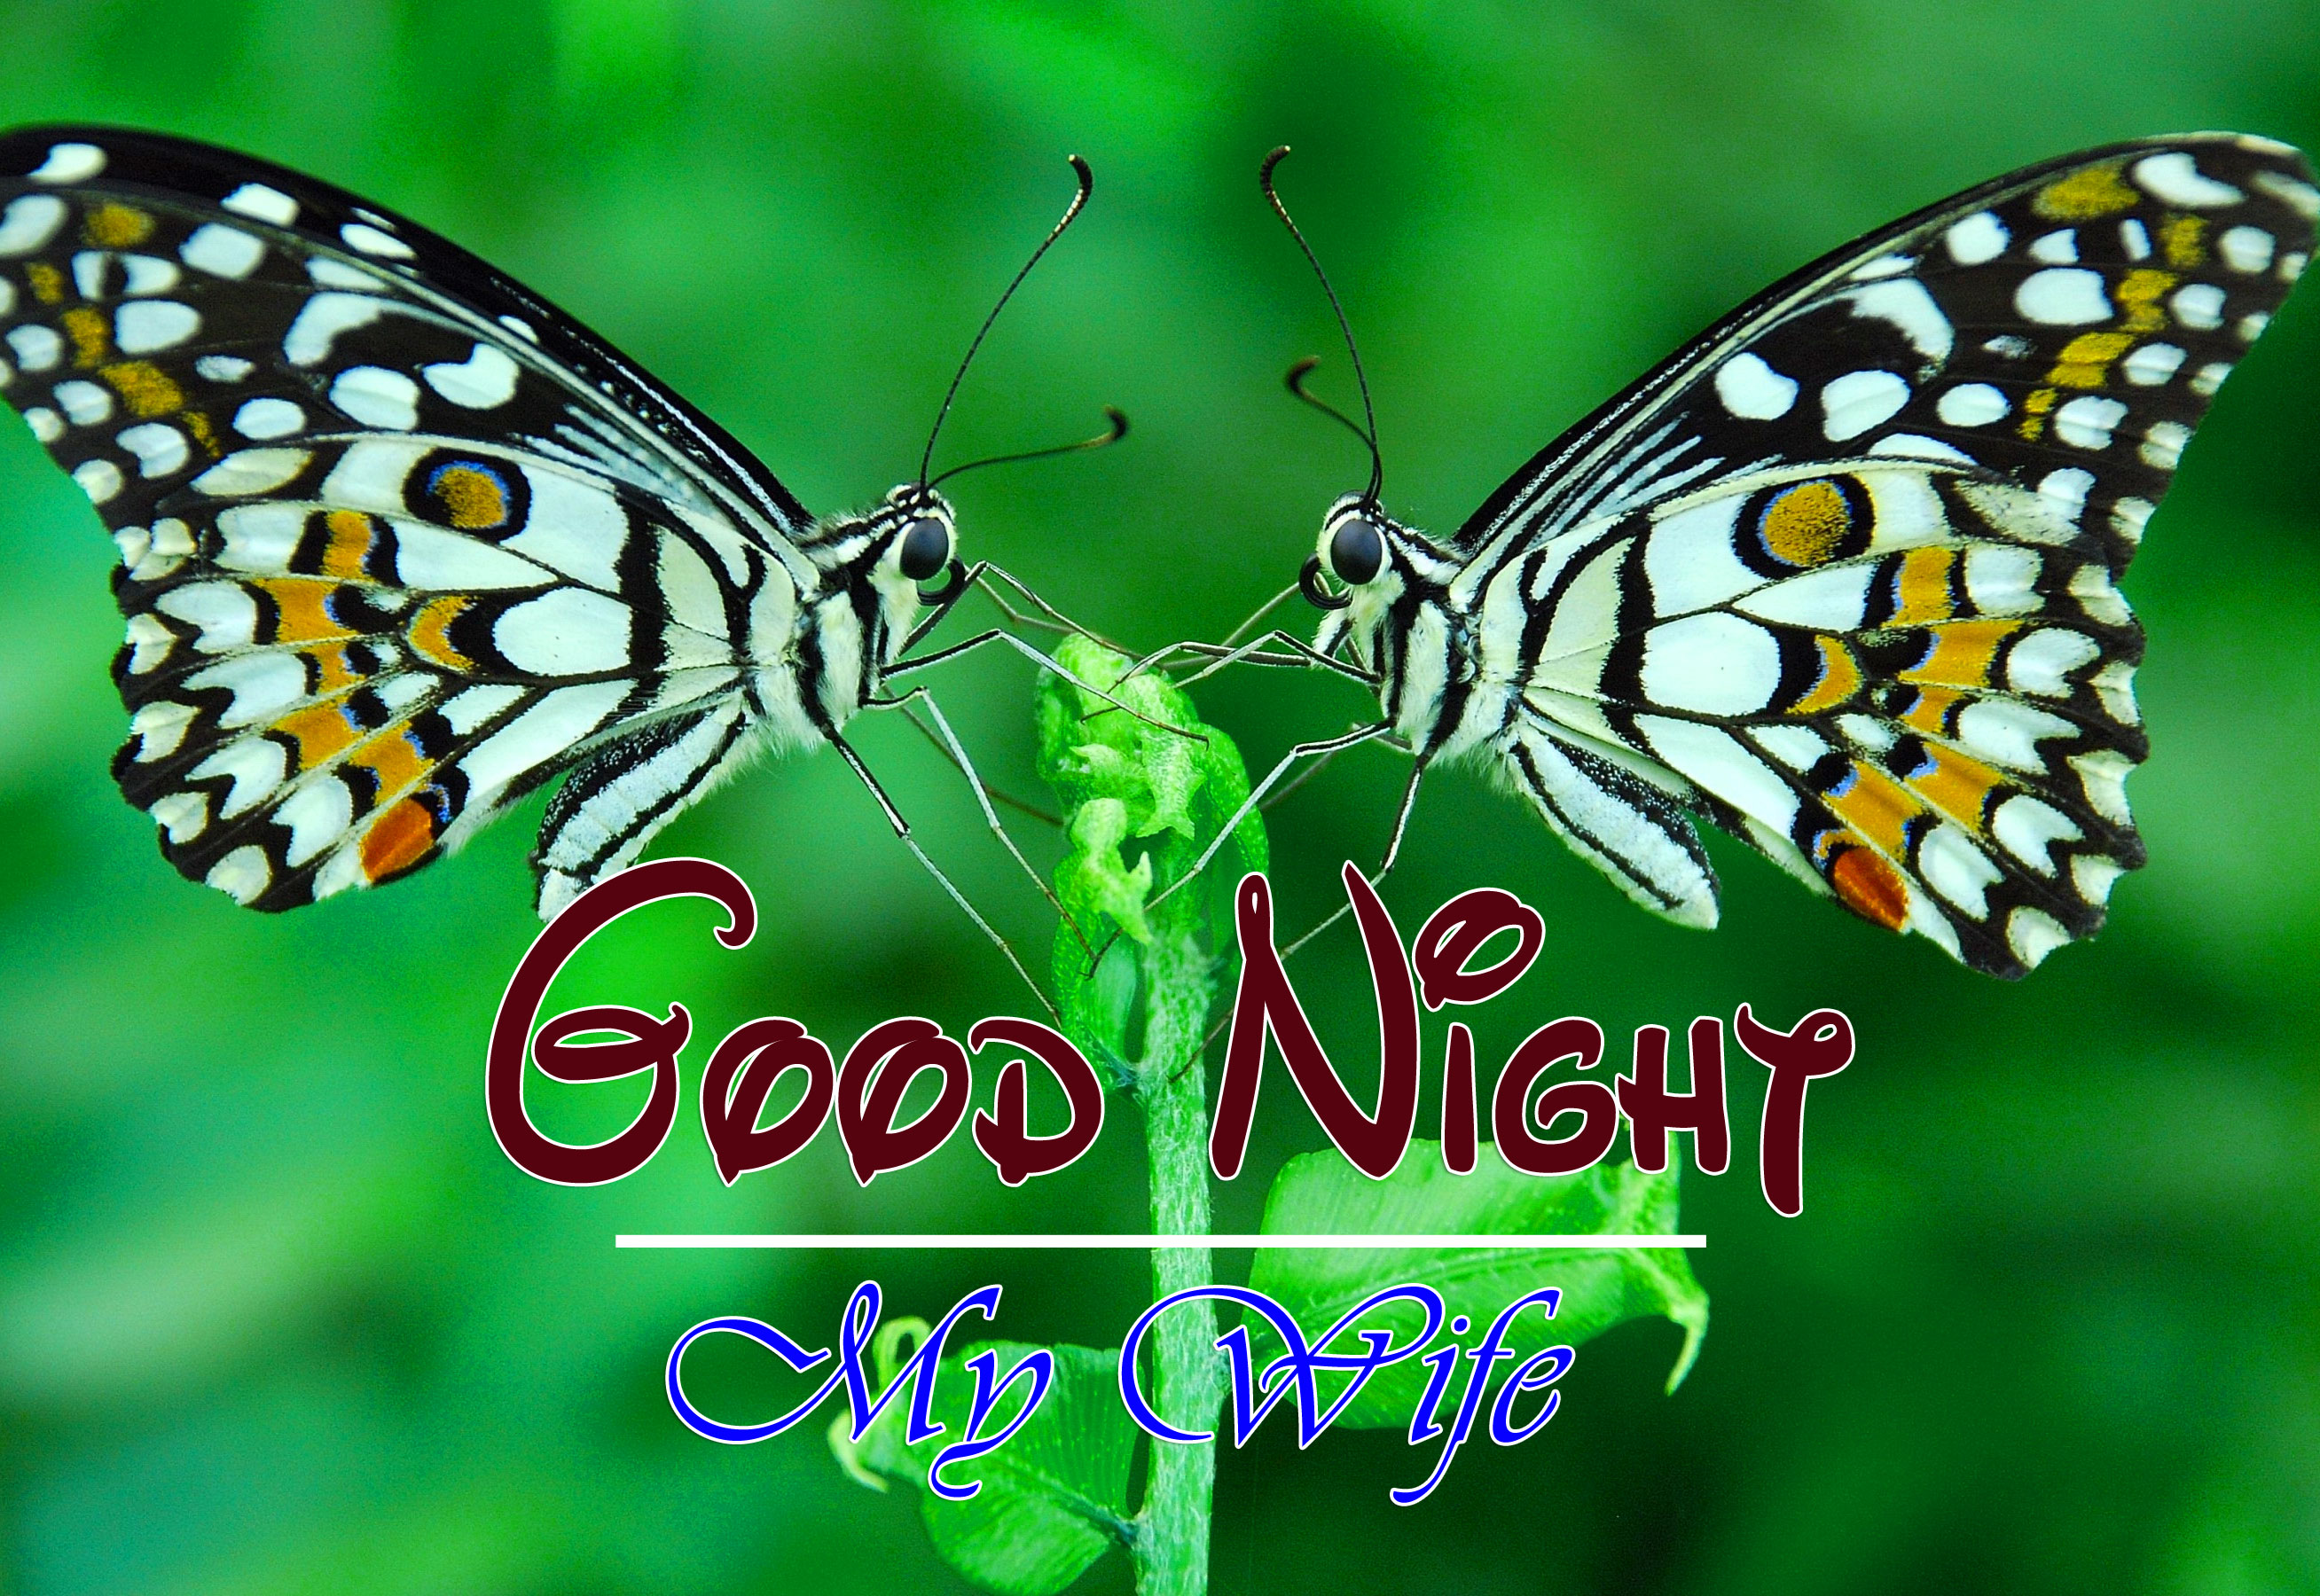 Top Good Night Images Free